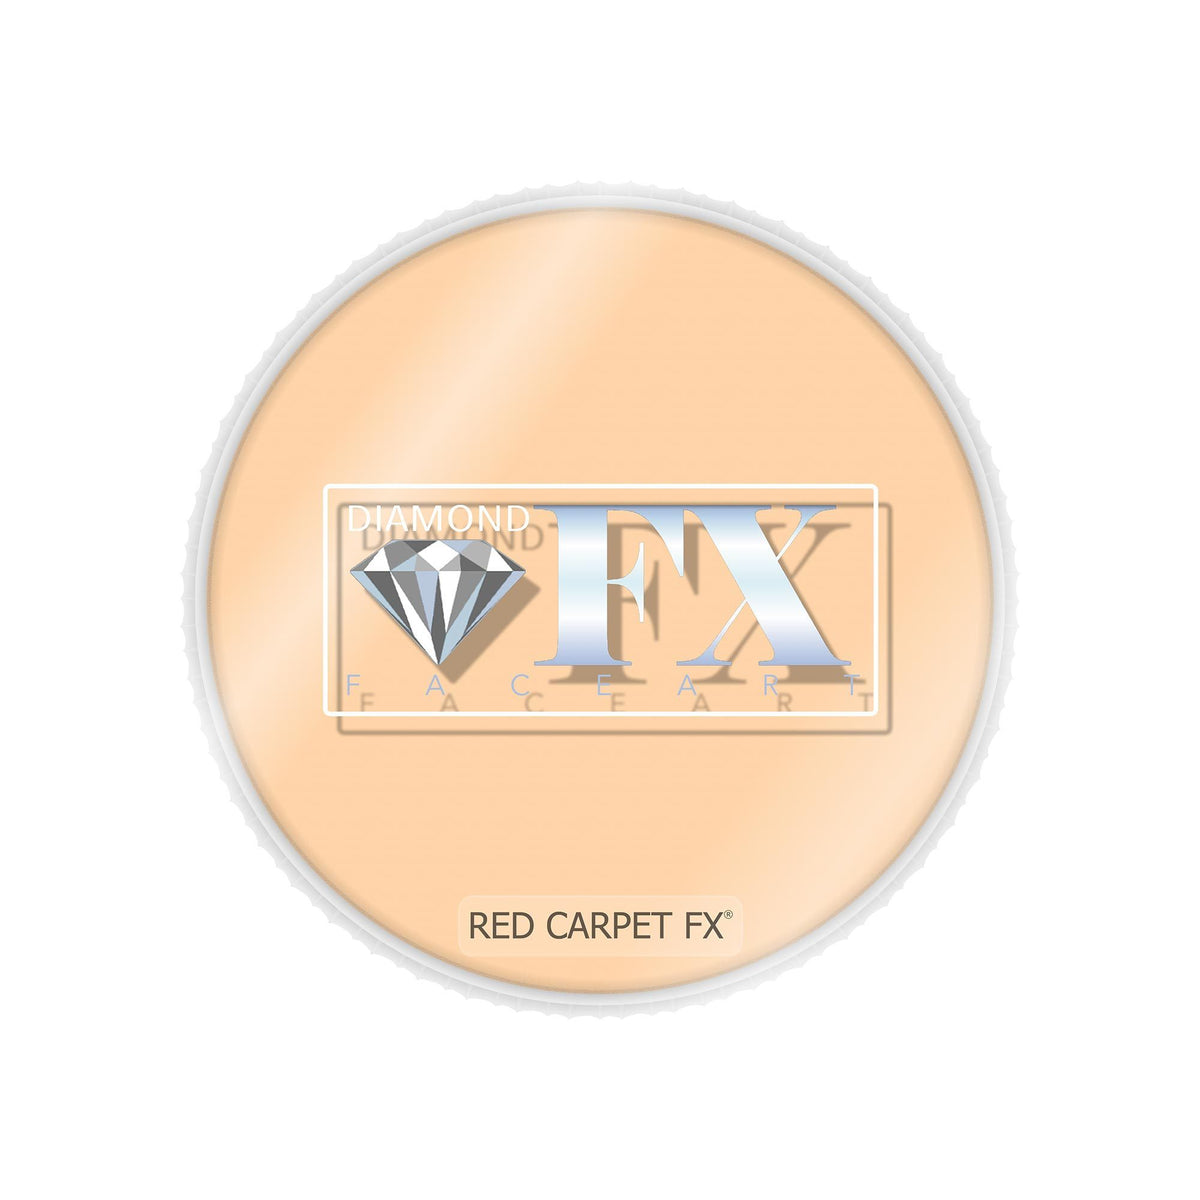 Diamond FX Cake Face & Body Paint - 30g